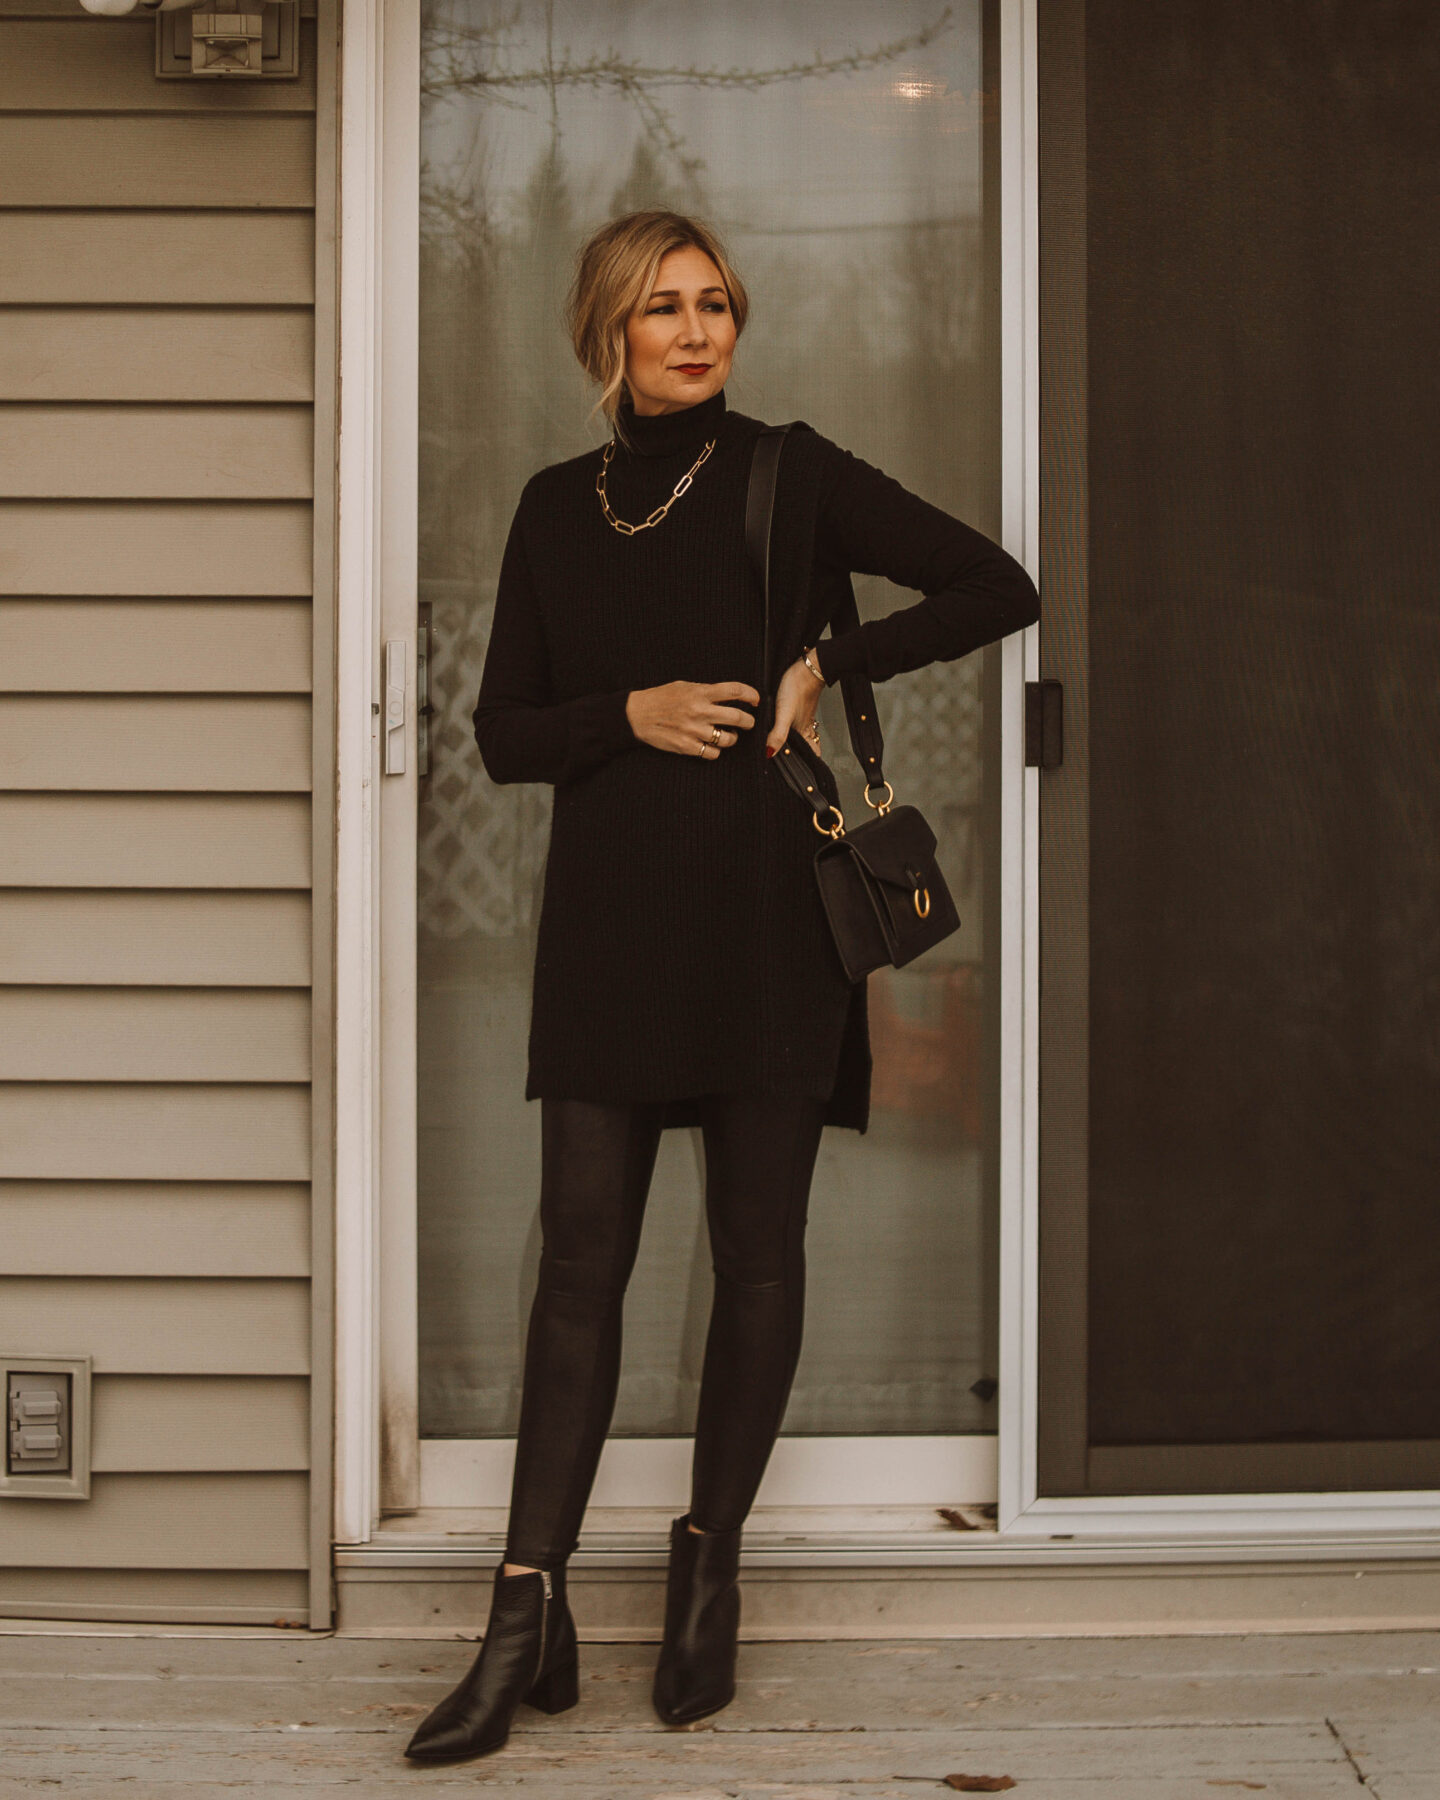 New Years Eve Outfits Feat. Faux Leather Leggings, black turtleneck, black sweater vest, black booties